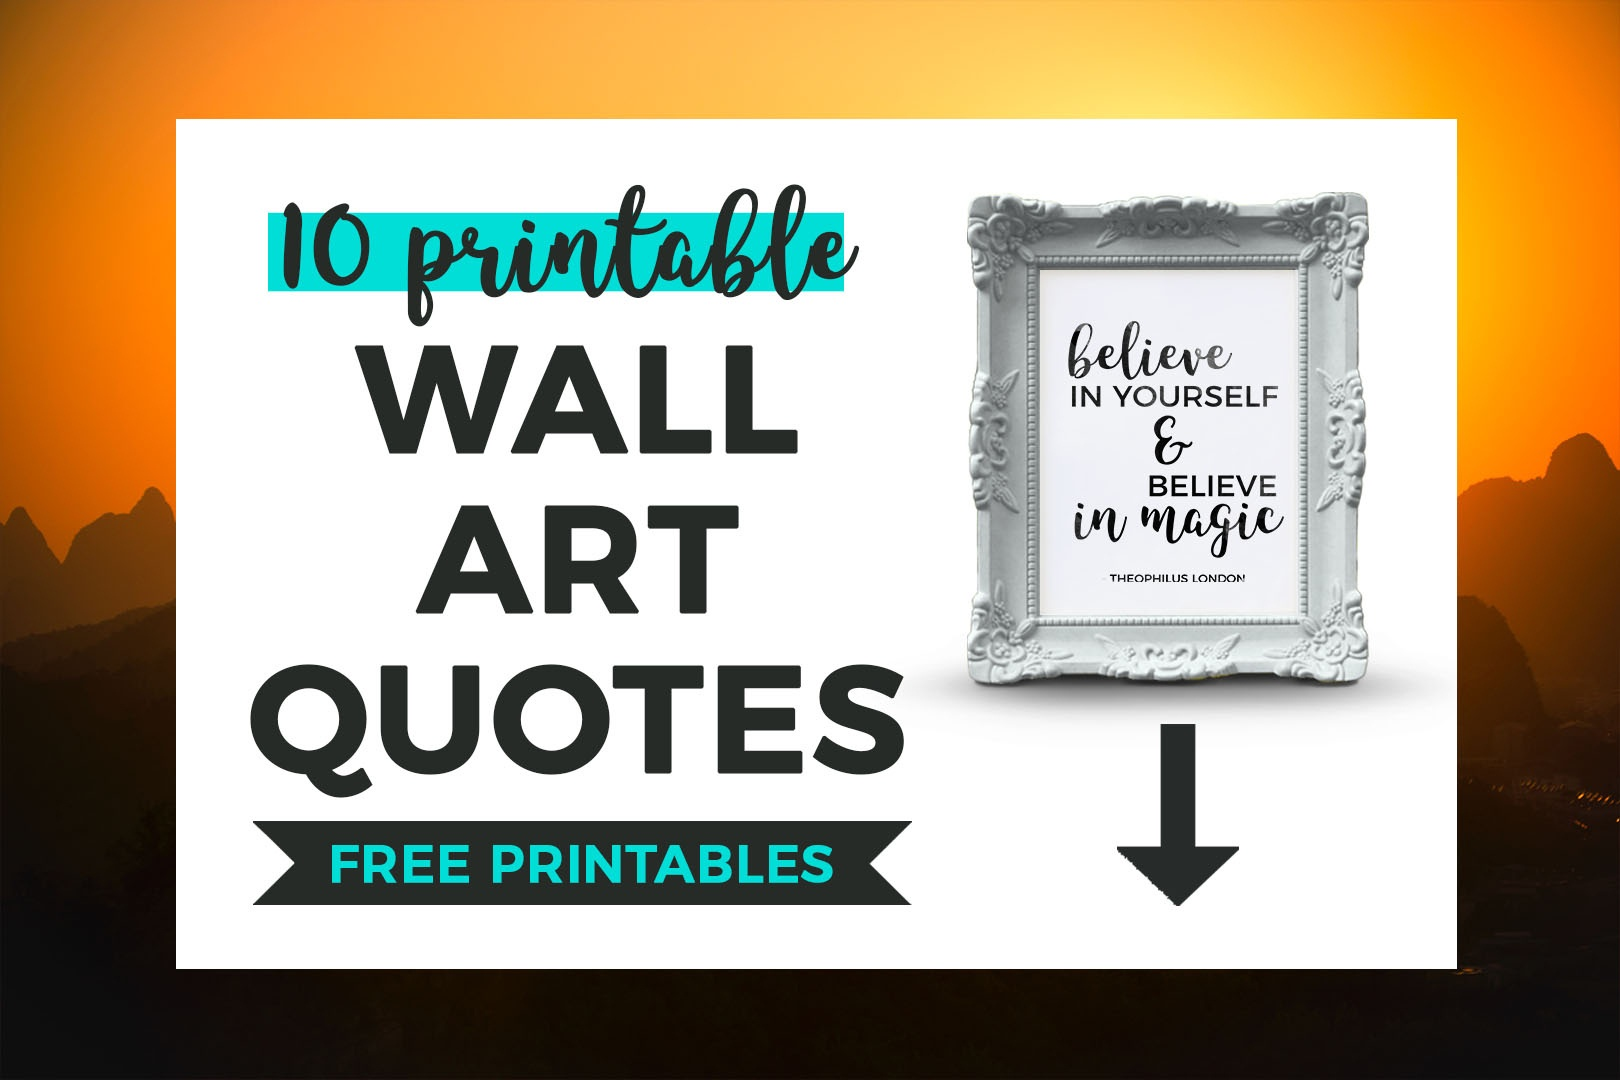 10 Printable Black And White Quotes That Inspire   It's All You Boo - Free Printable Wall Art Quotes